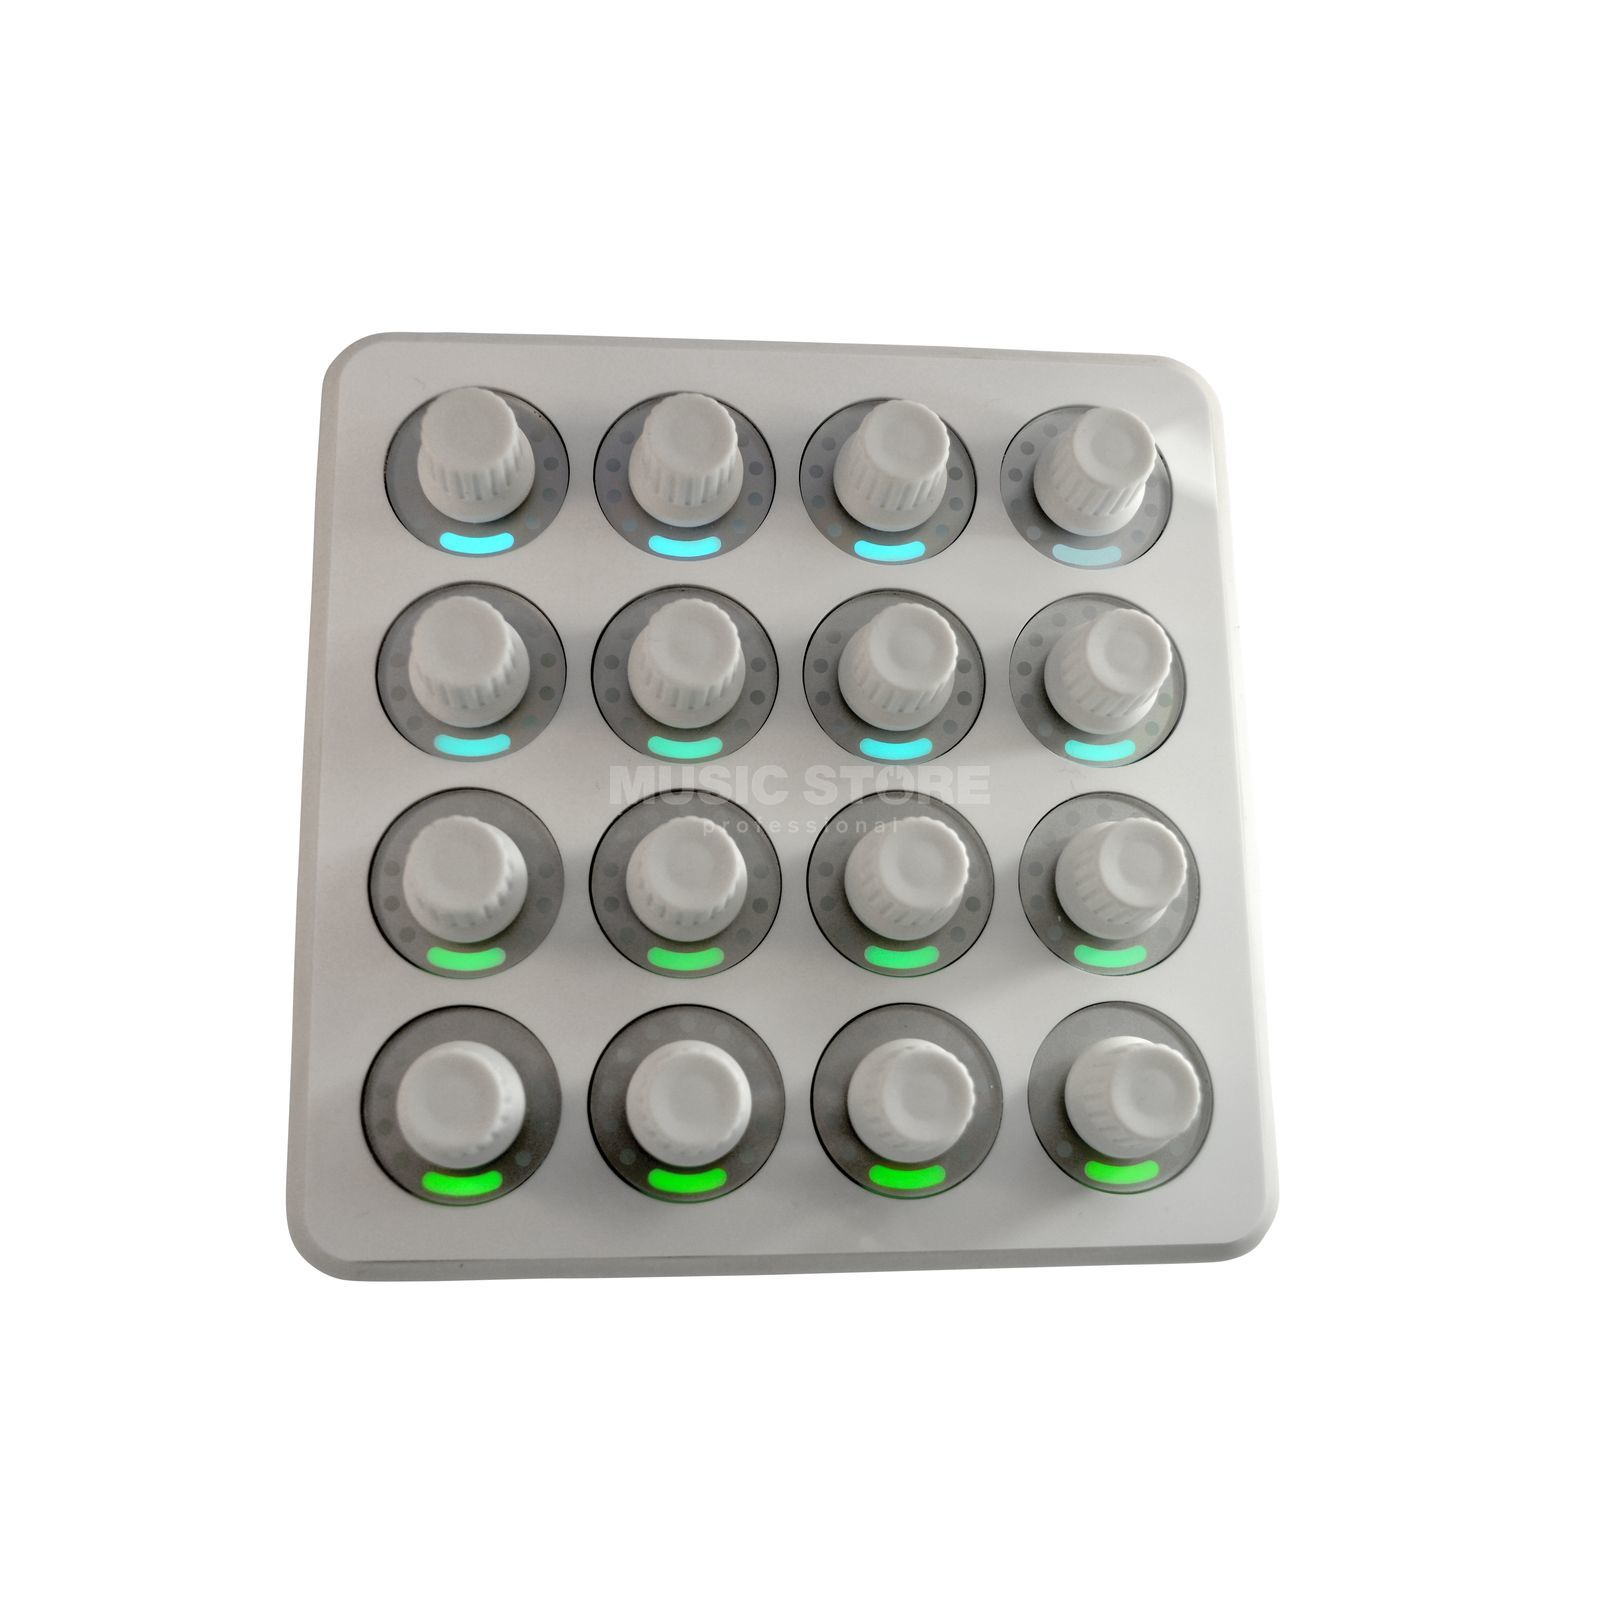 DJ TECHTOOLS Midi Fighter Twister blanc Image du produit